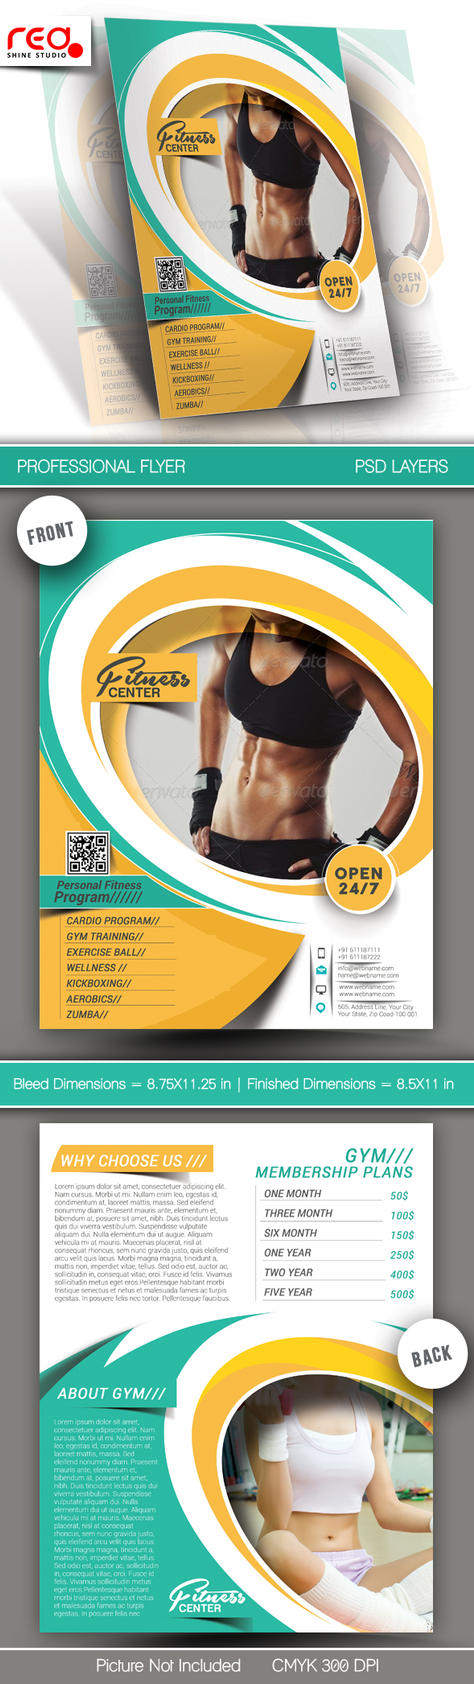 Fitness and Yoga Center Flyer and Poster Template by Redshinestudio